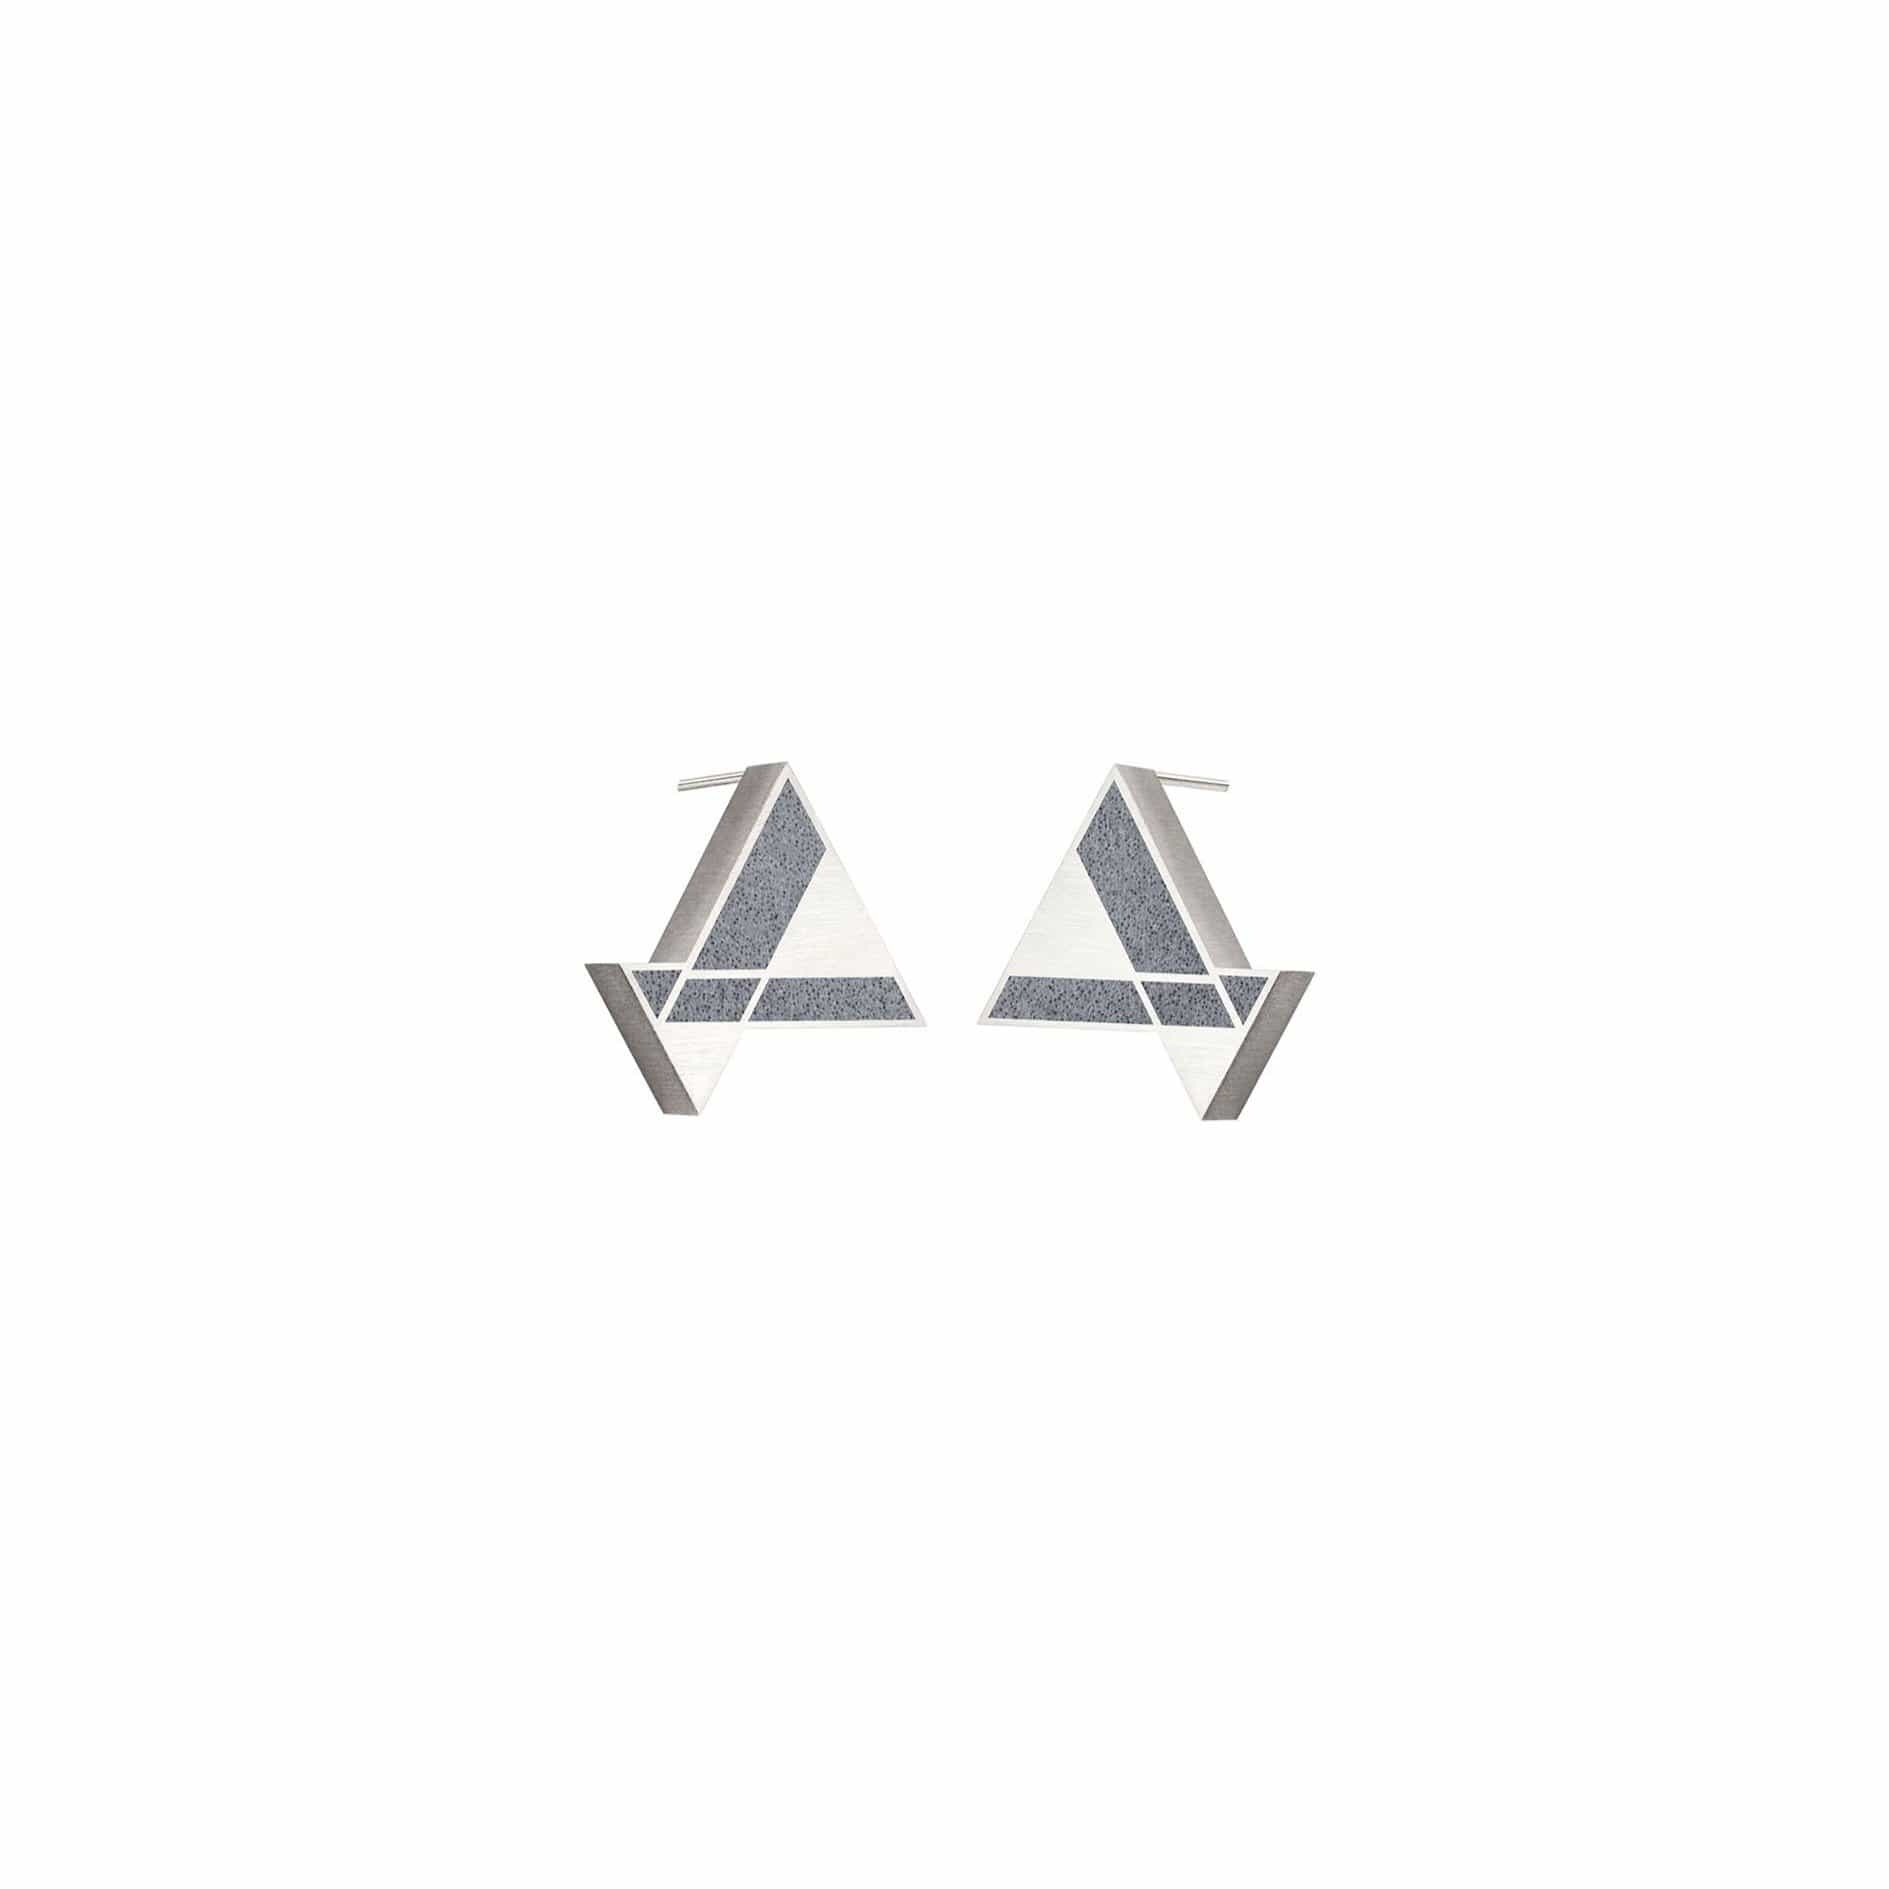 Konzuk Earrings DG - Dark Grey Imperial Hotel Concrete Earring Triangle Studs